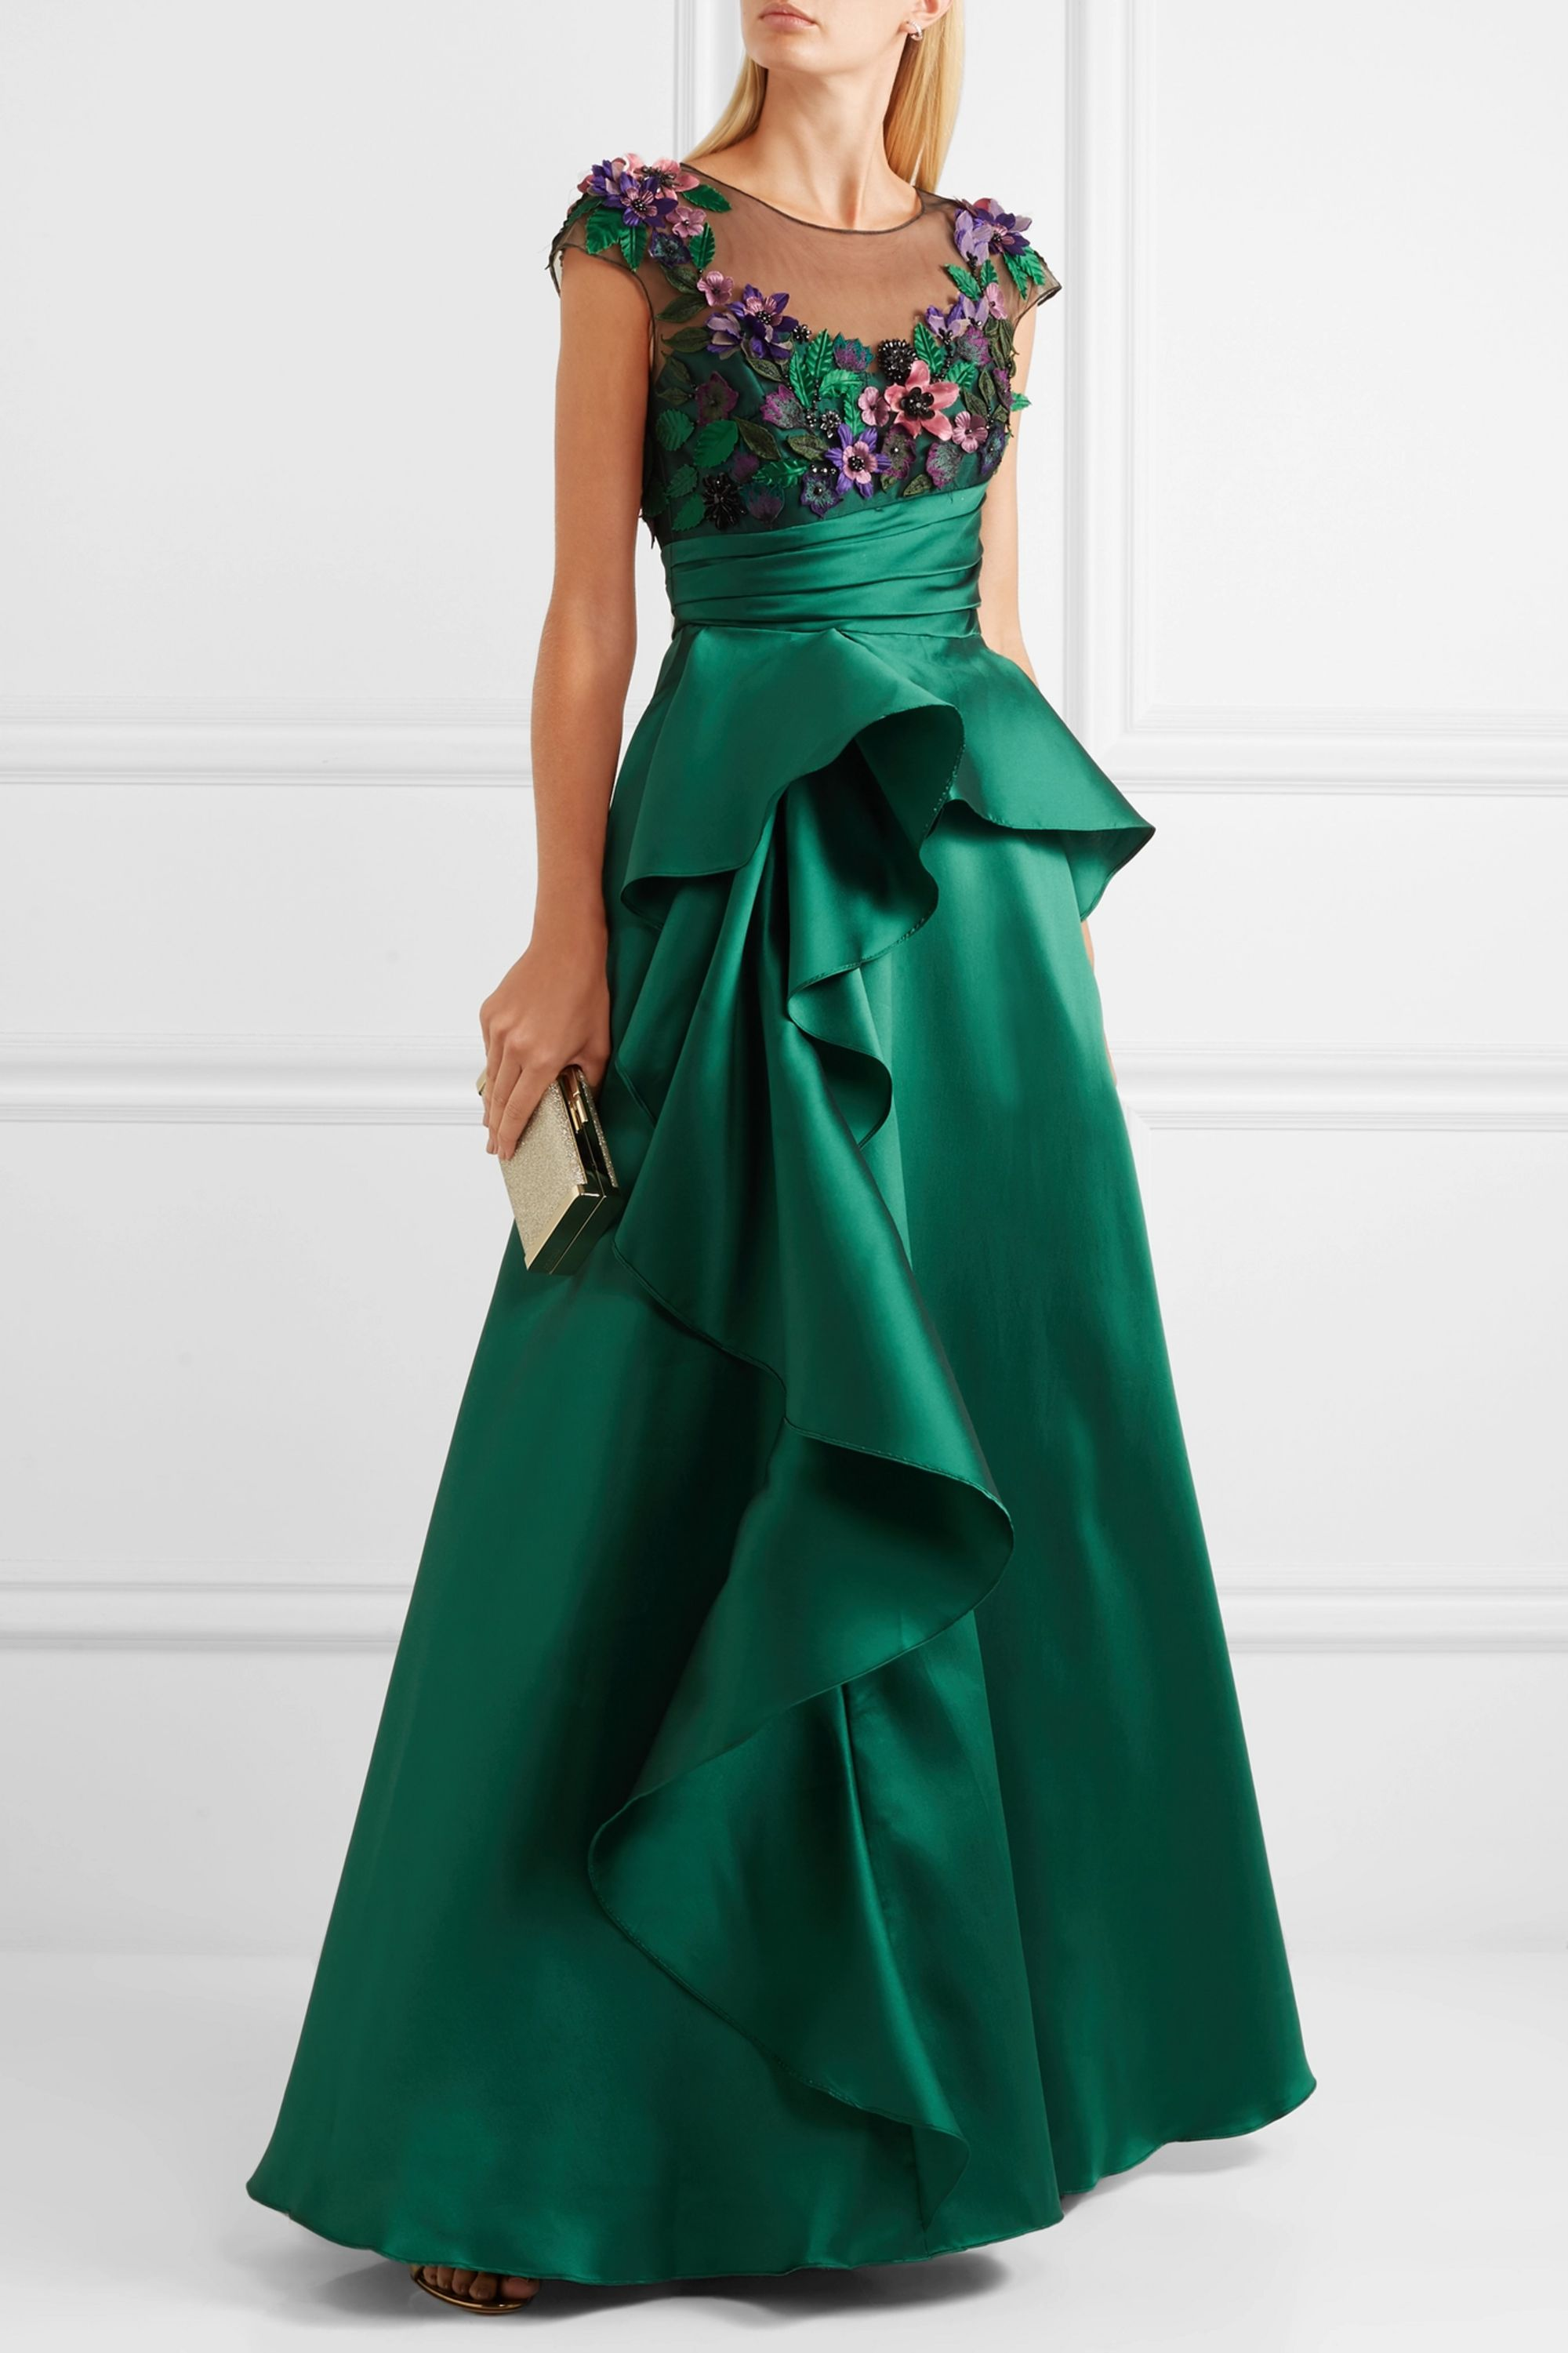 Marchesa Notte Ruffled mikado and appliquéd tulle gown